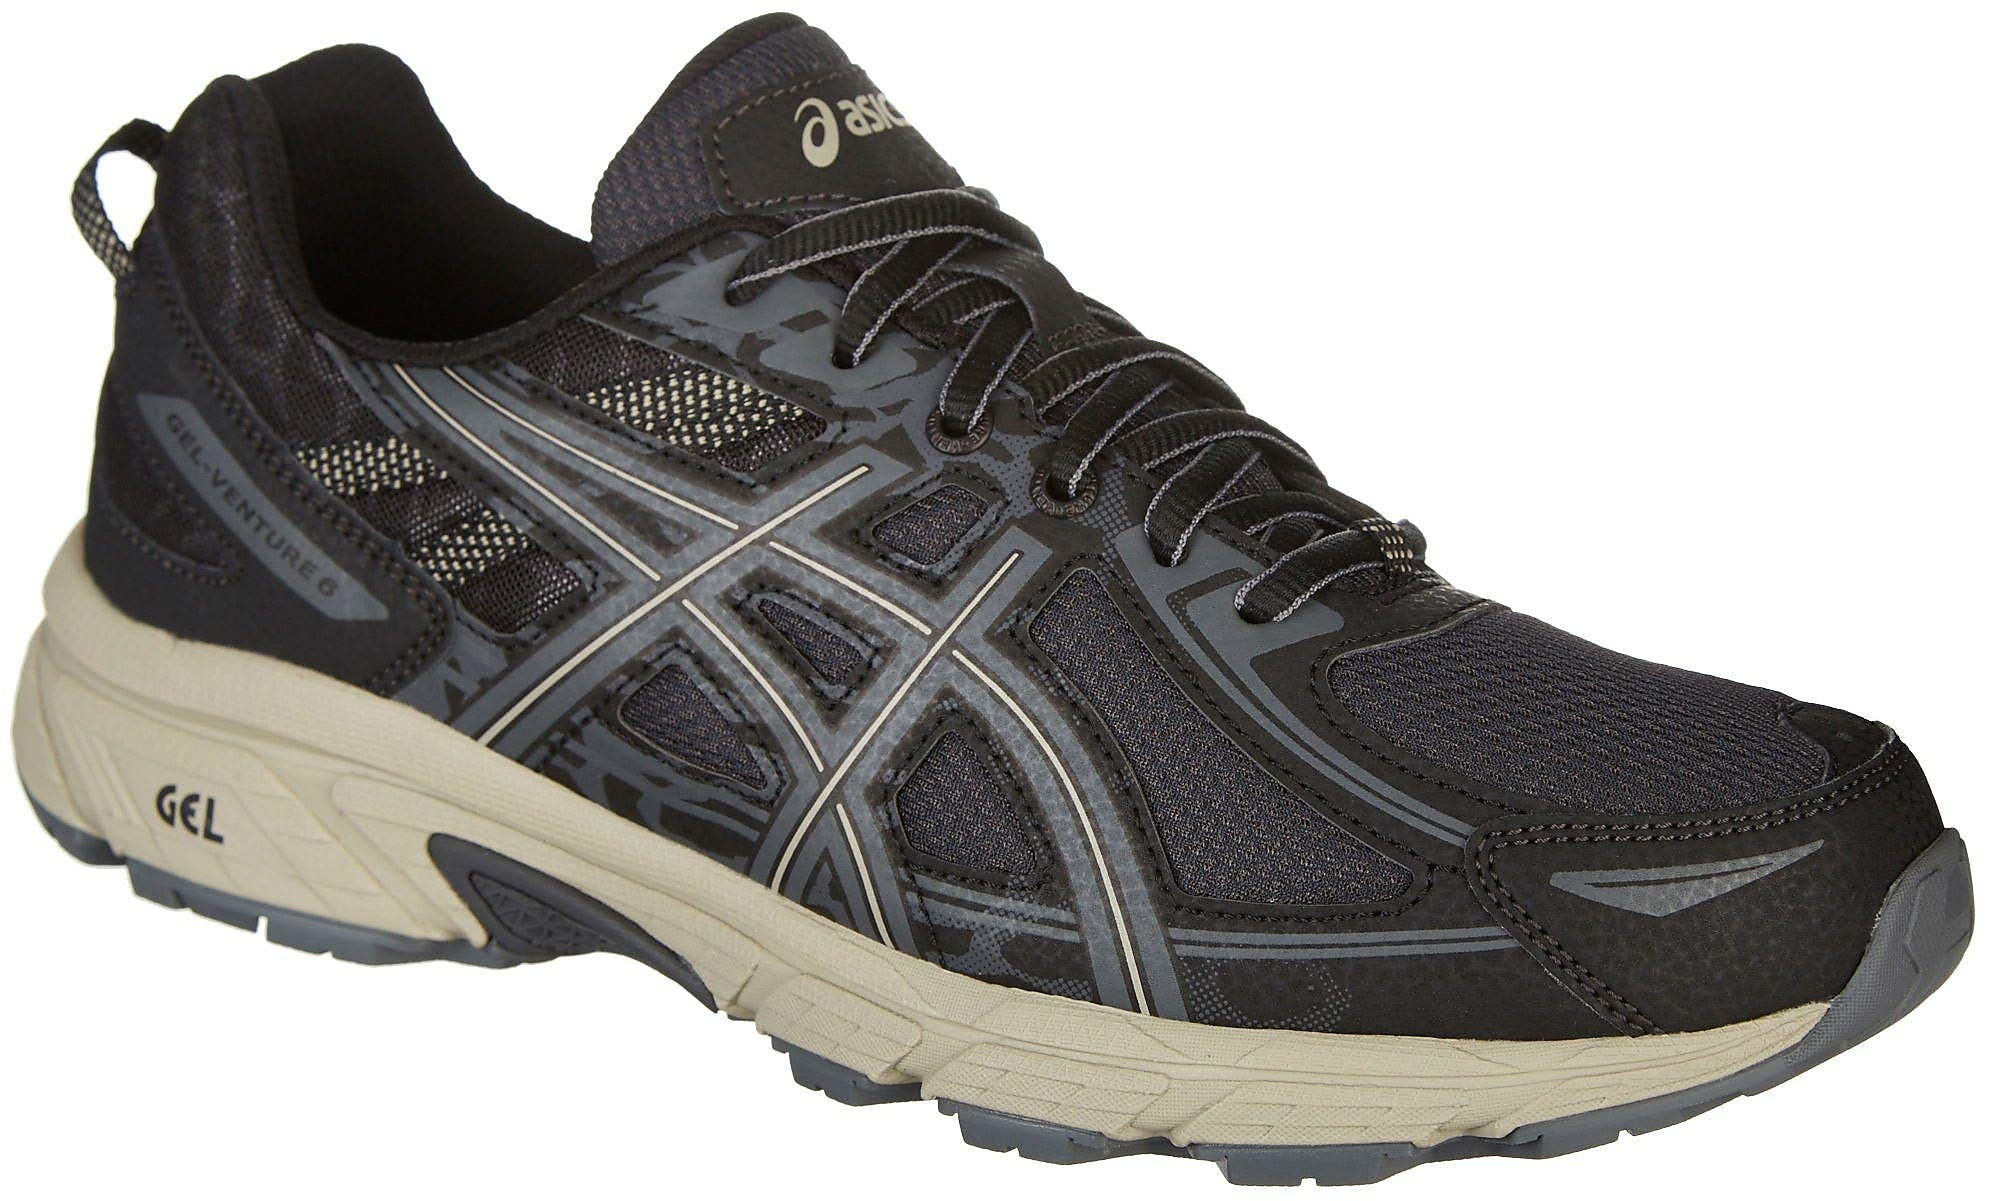 ASICS Men's Gel-Venture 6 Running Shoes Black/Dark Grey/Feather Grey 12 D(M) US